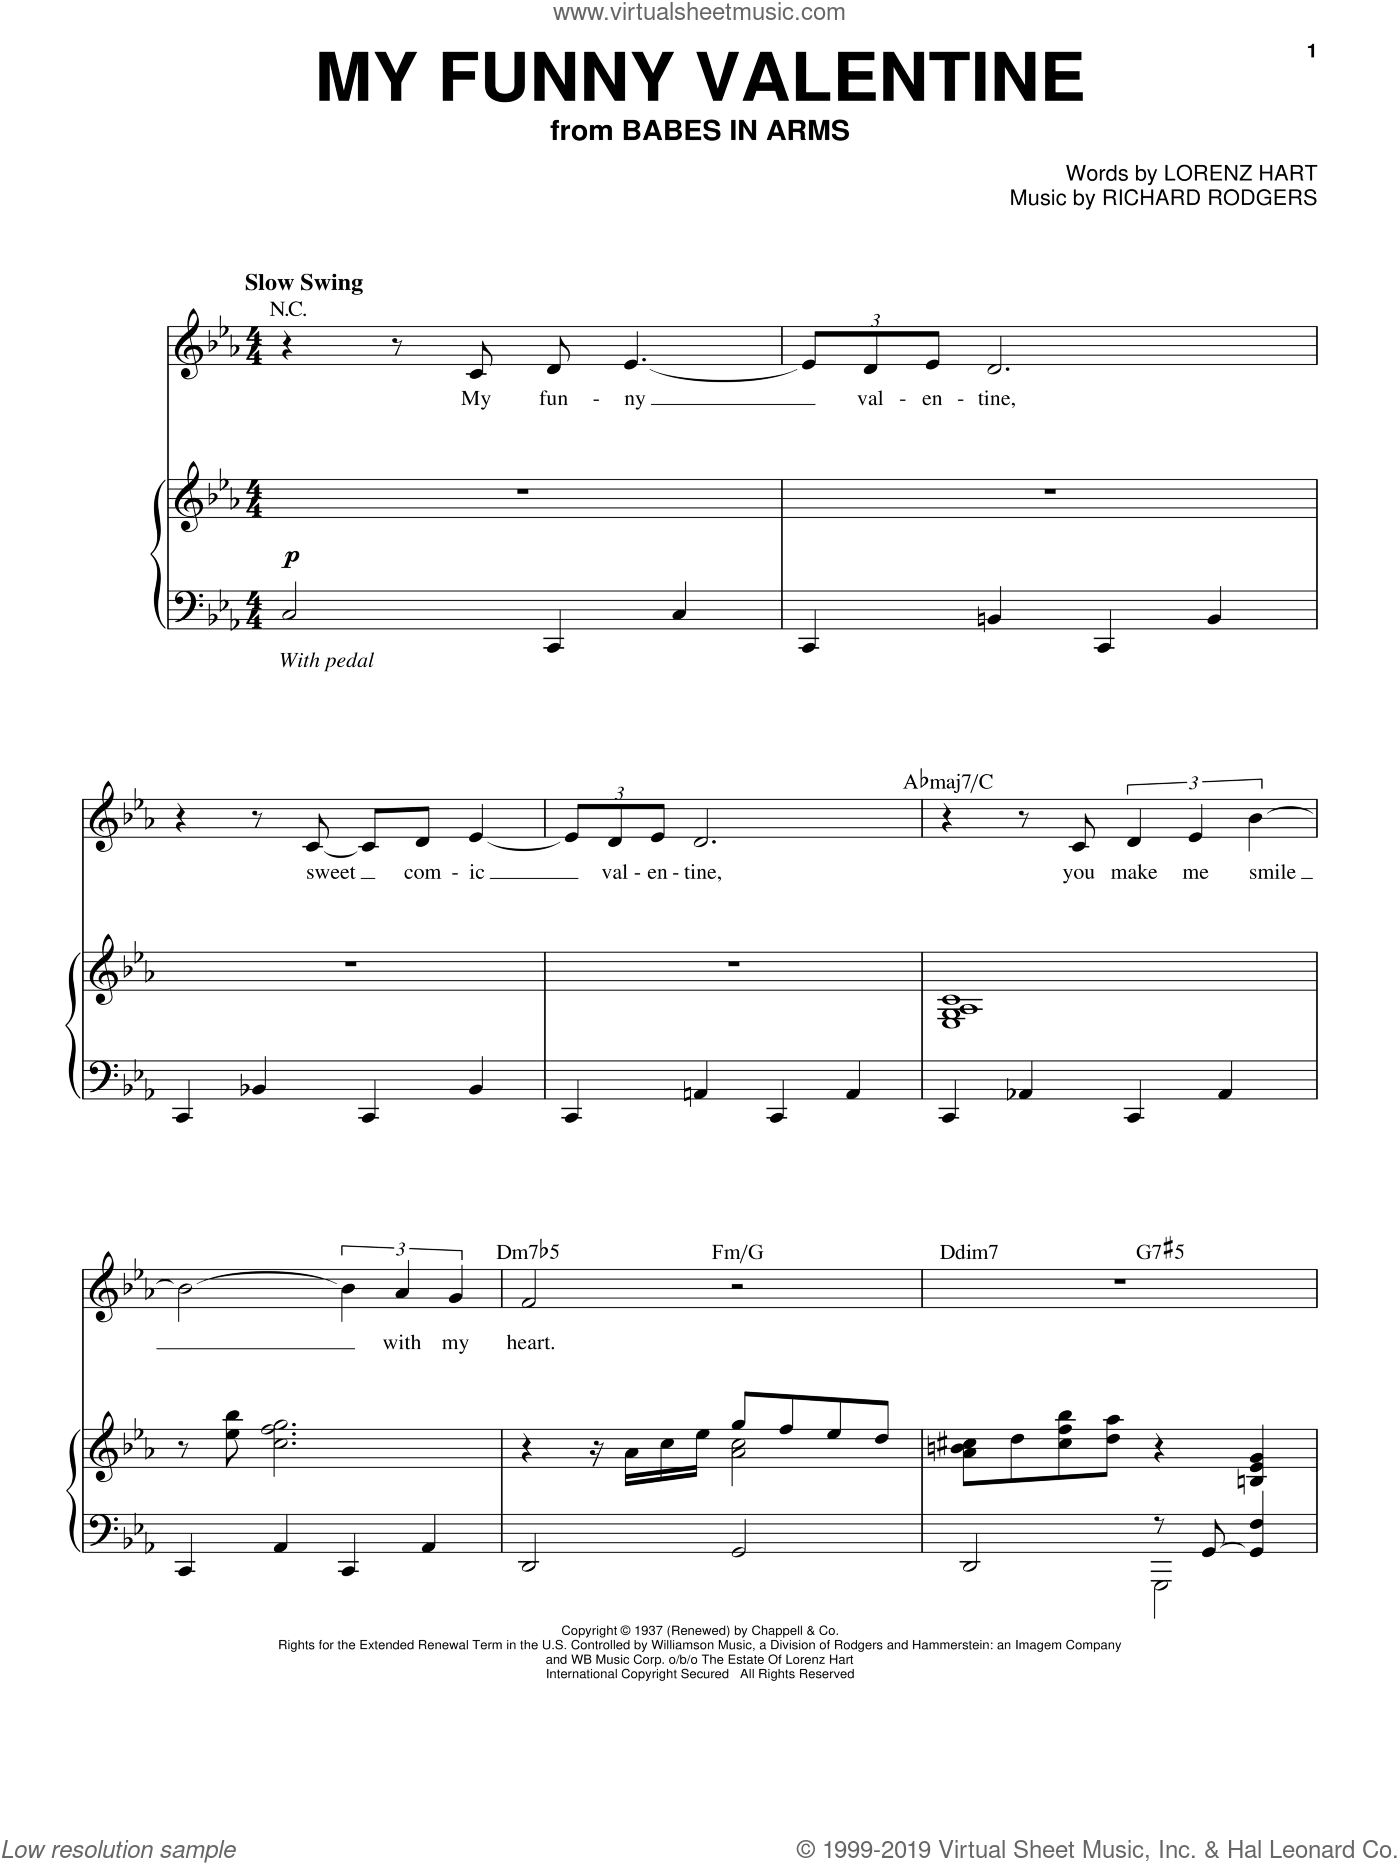 My Funny Valentine sheet music for voice and piano by Chet Baker, Lorenz Hart and Richard Rodgers, intermediate skill level